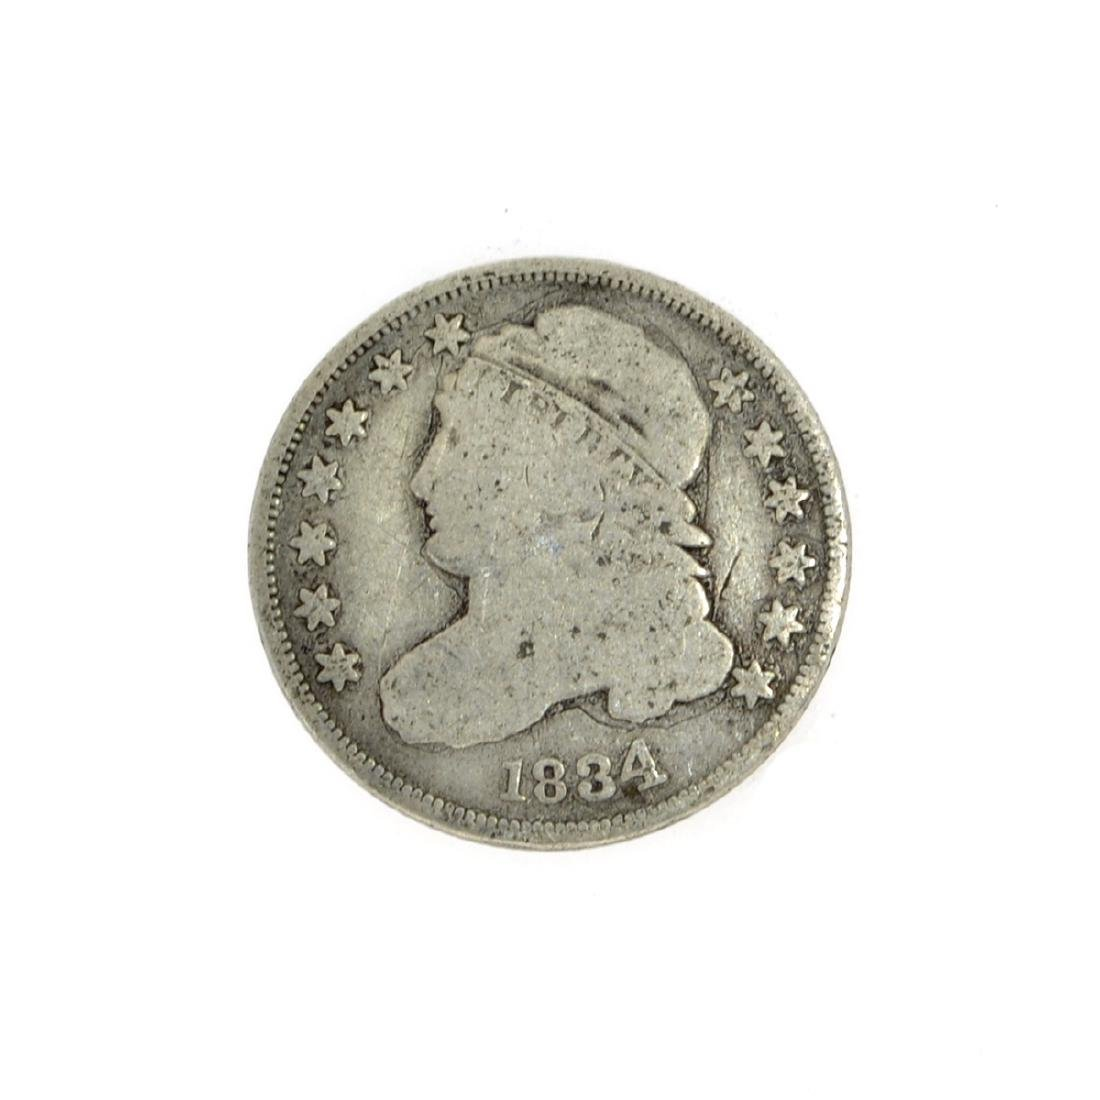 Rare 1834 Capped Bust Dime Coin